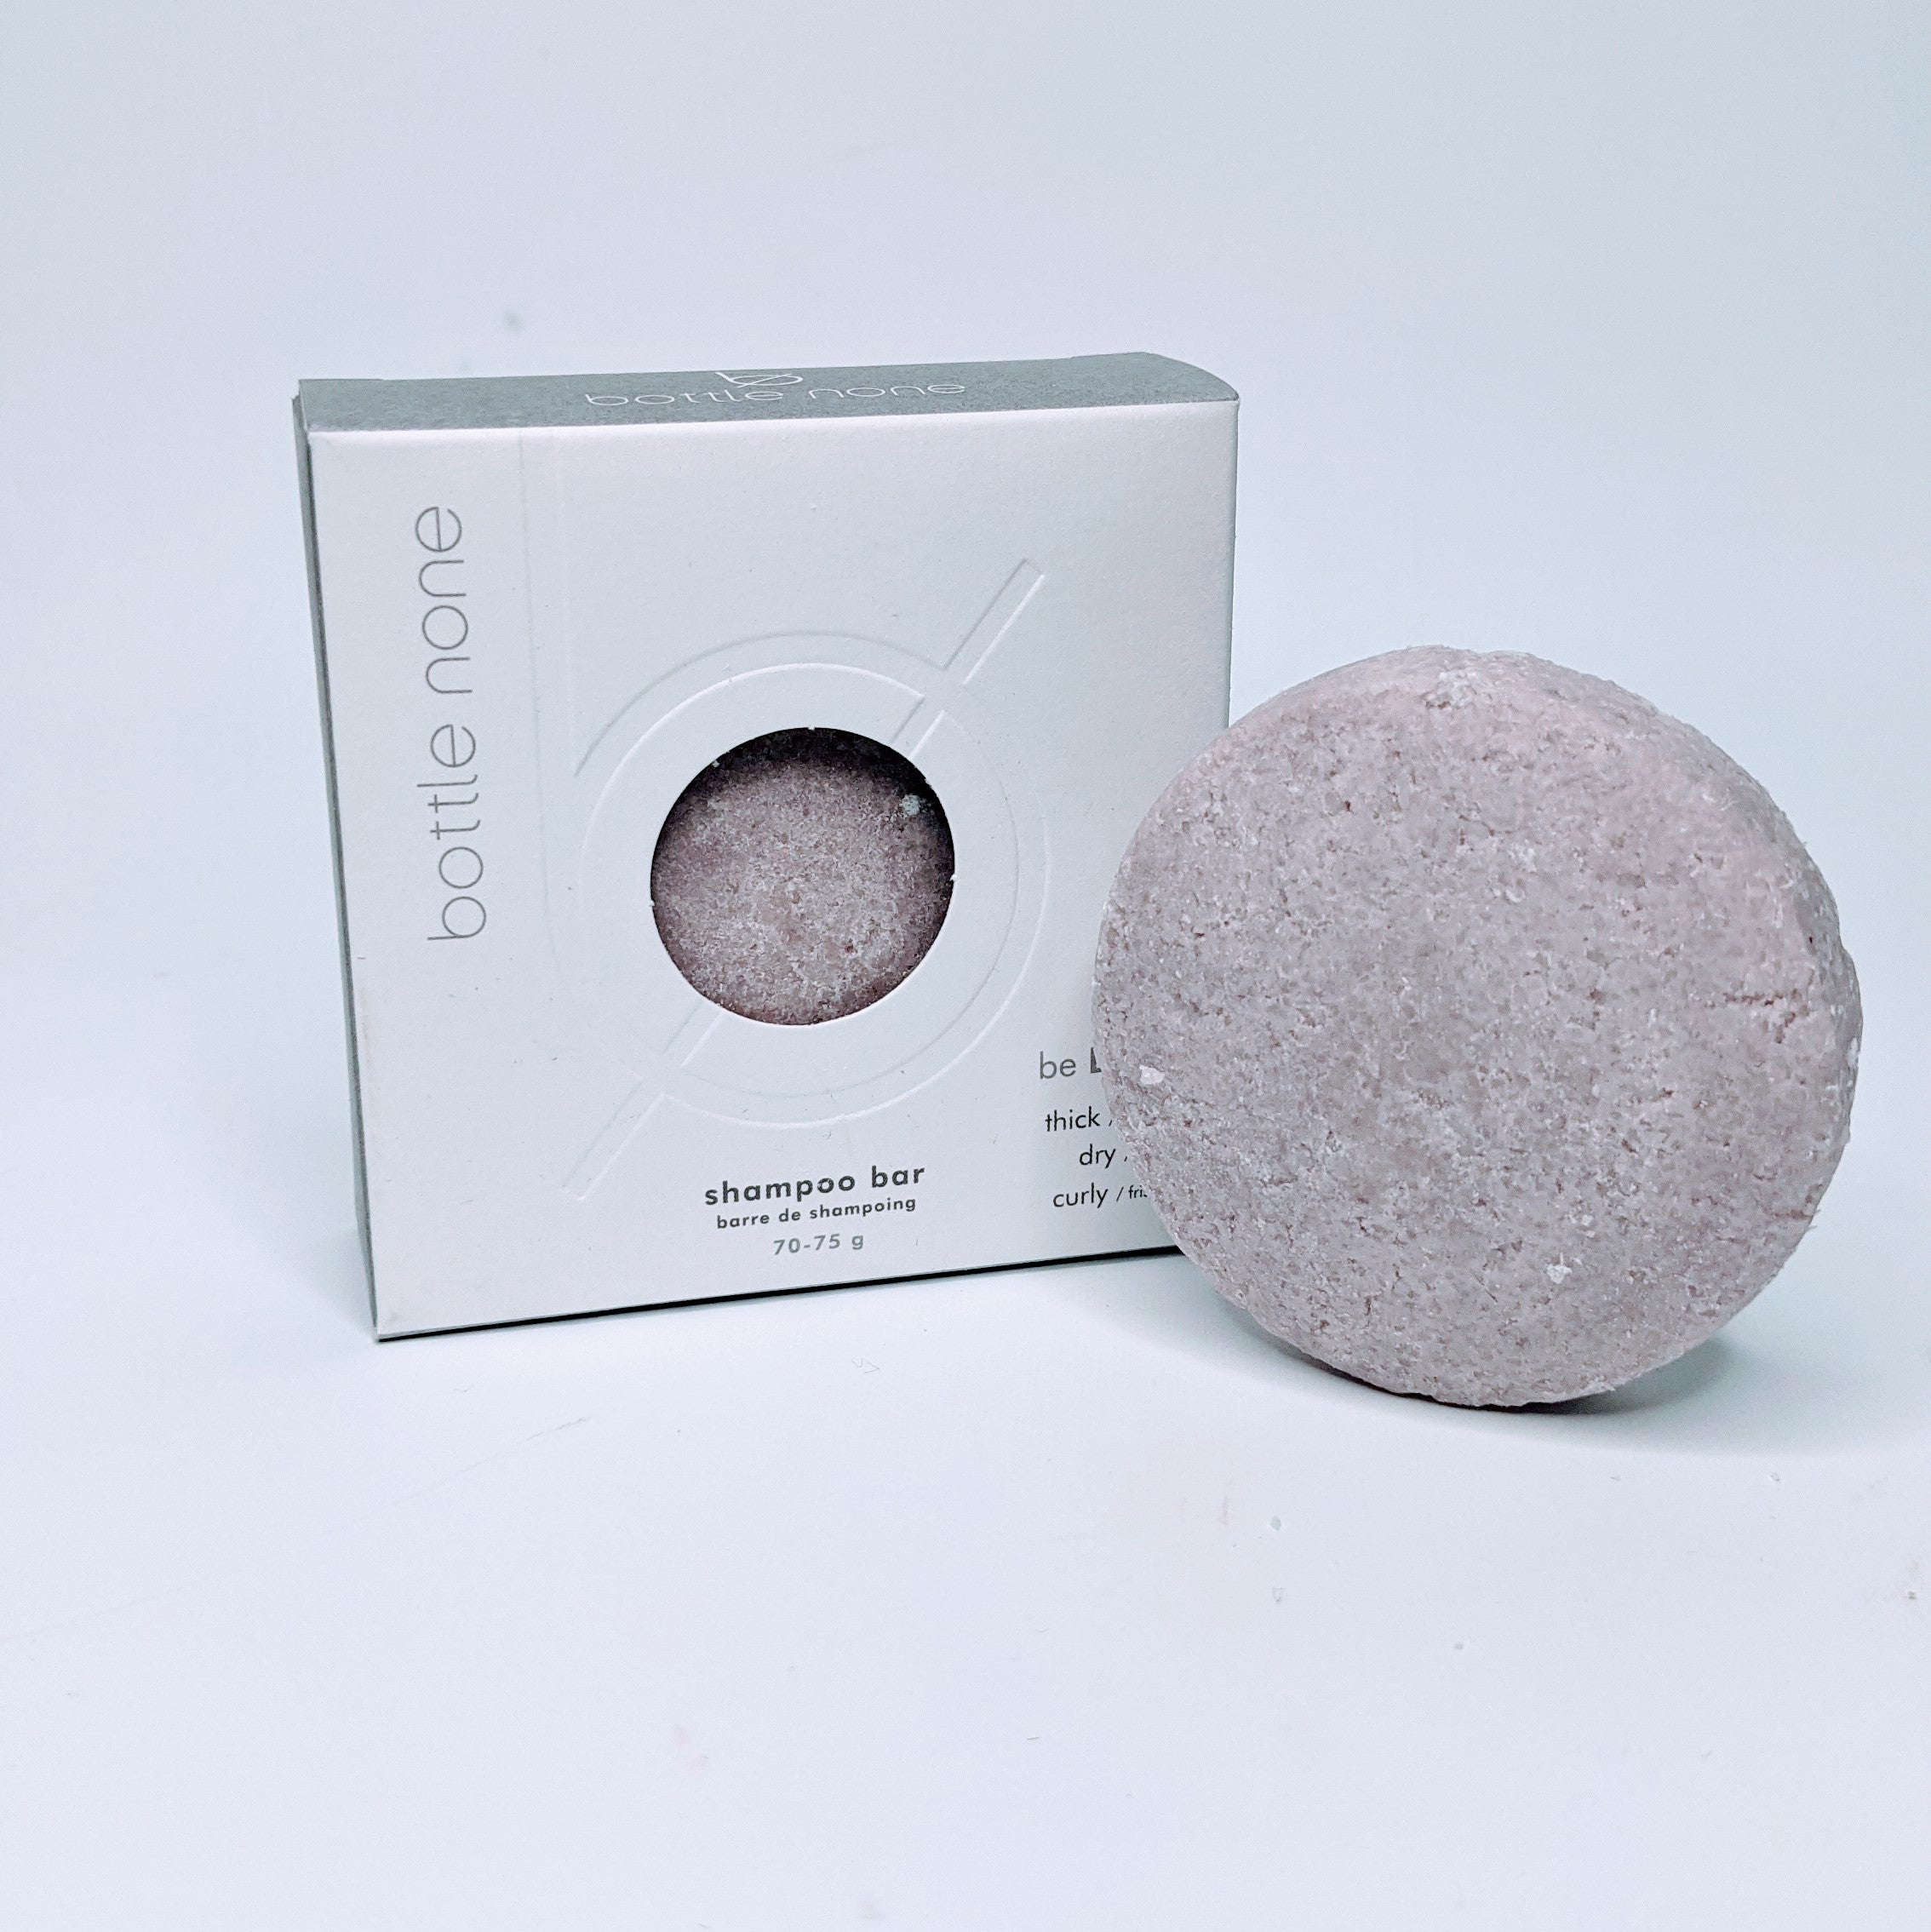 be BOLD - thick/curly/coarse hair vegan shampoo bar